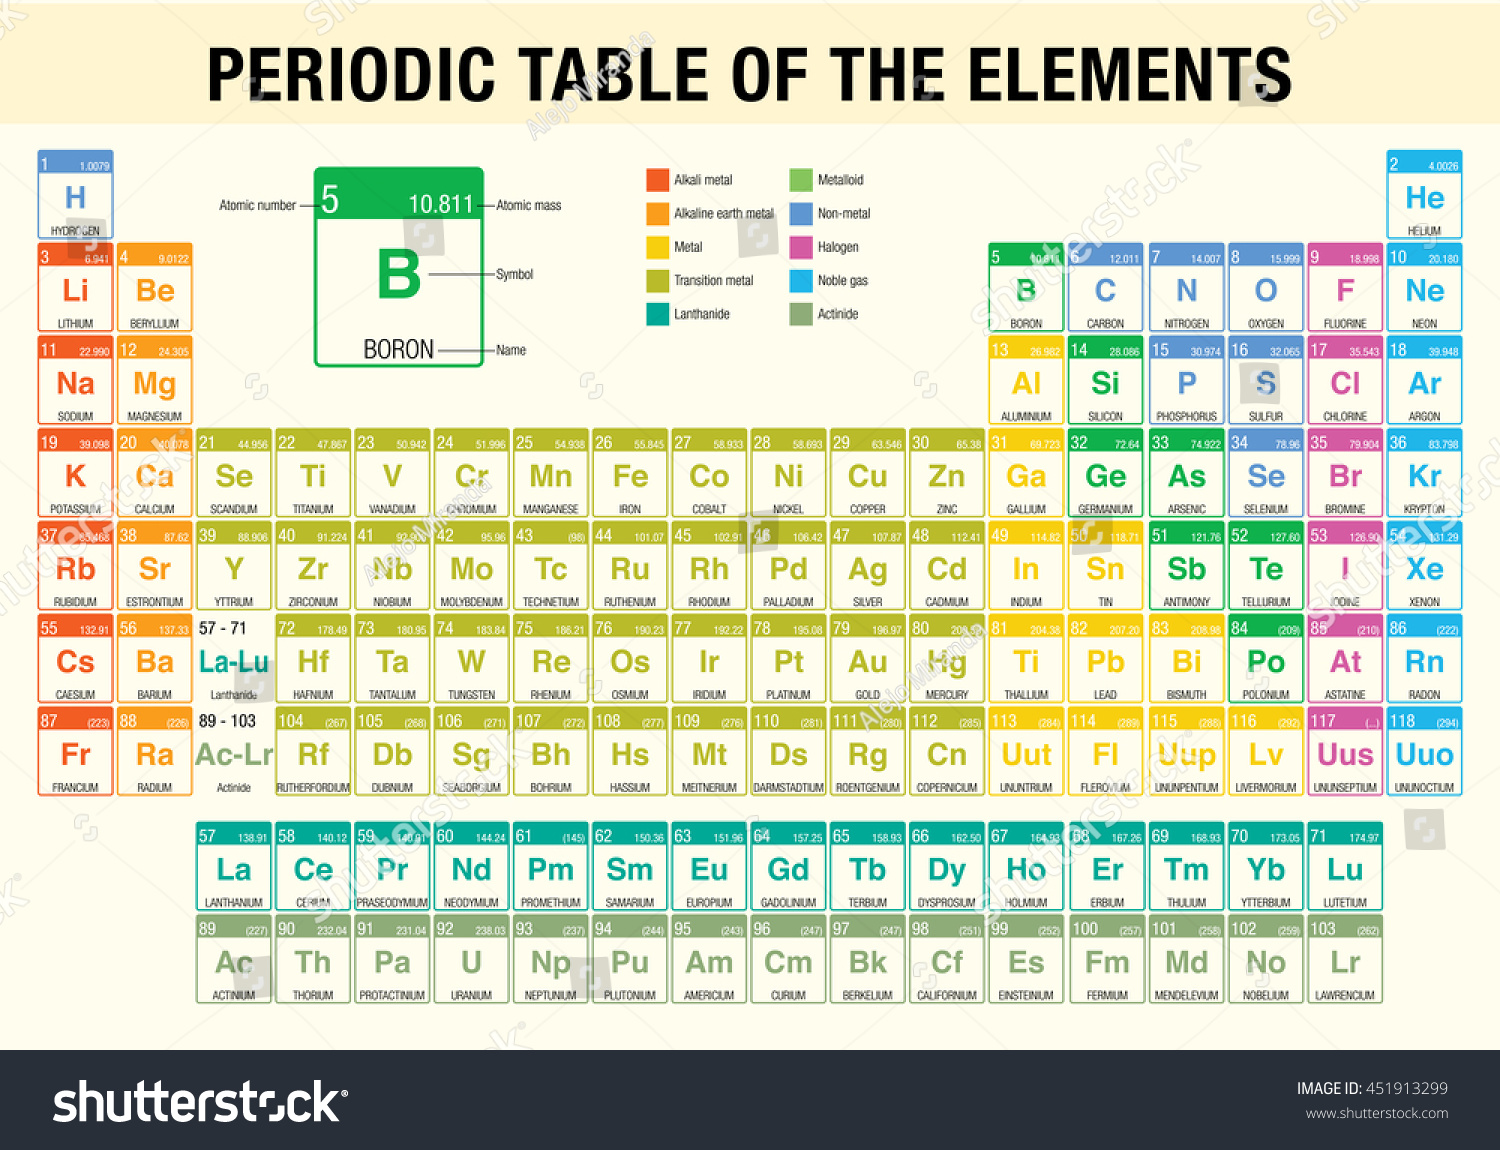 Periodic table elements chemistry stock vector 451913299 periodic table of the elements chemistry gamestrikefo Choice Image